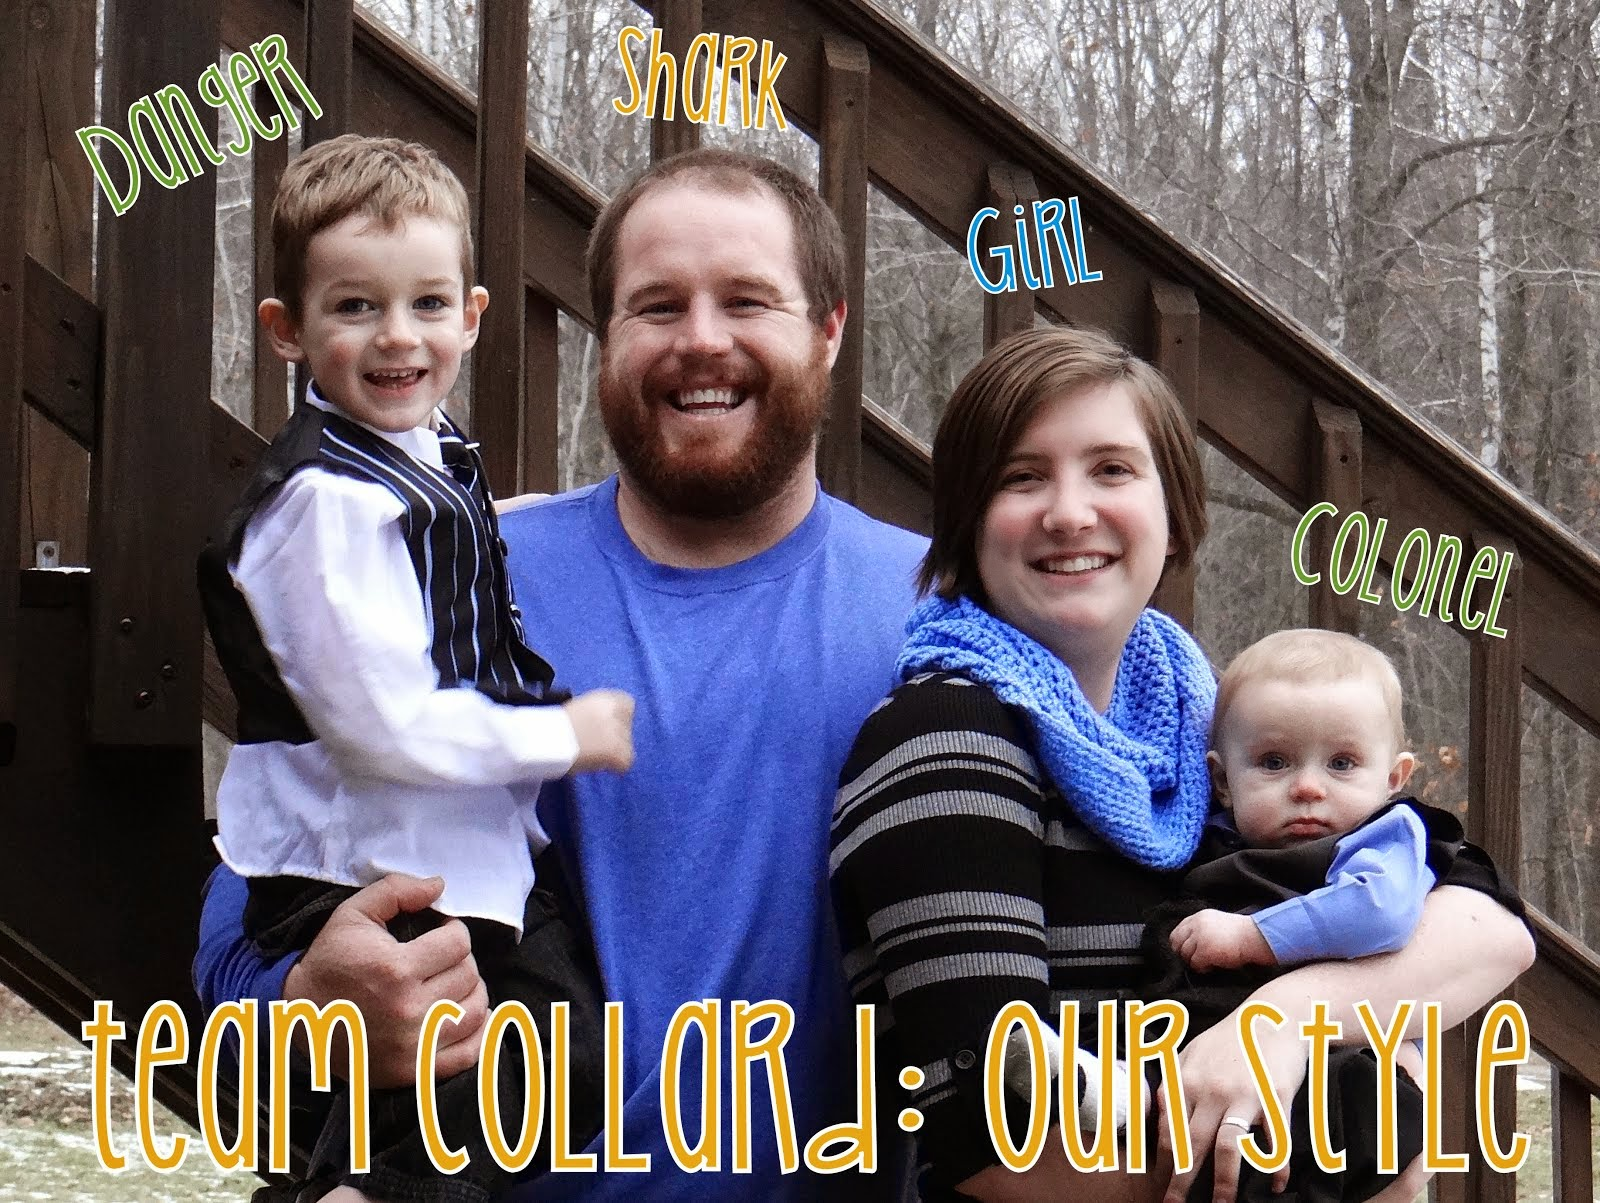 Team Collard: Our Style